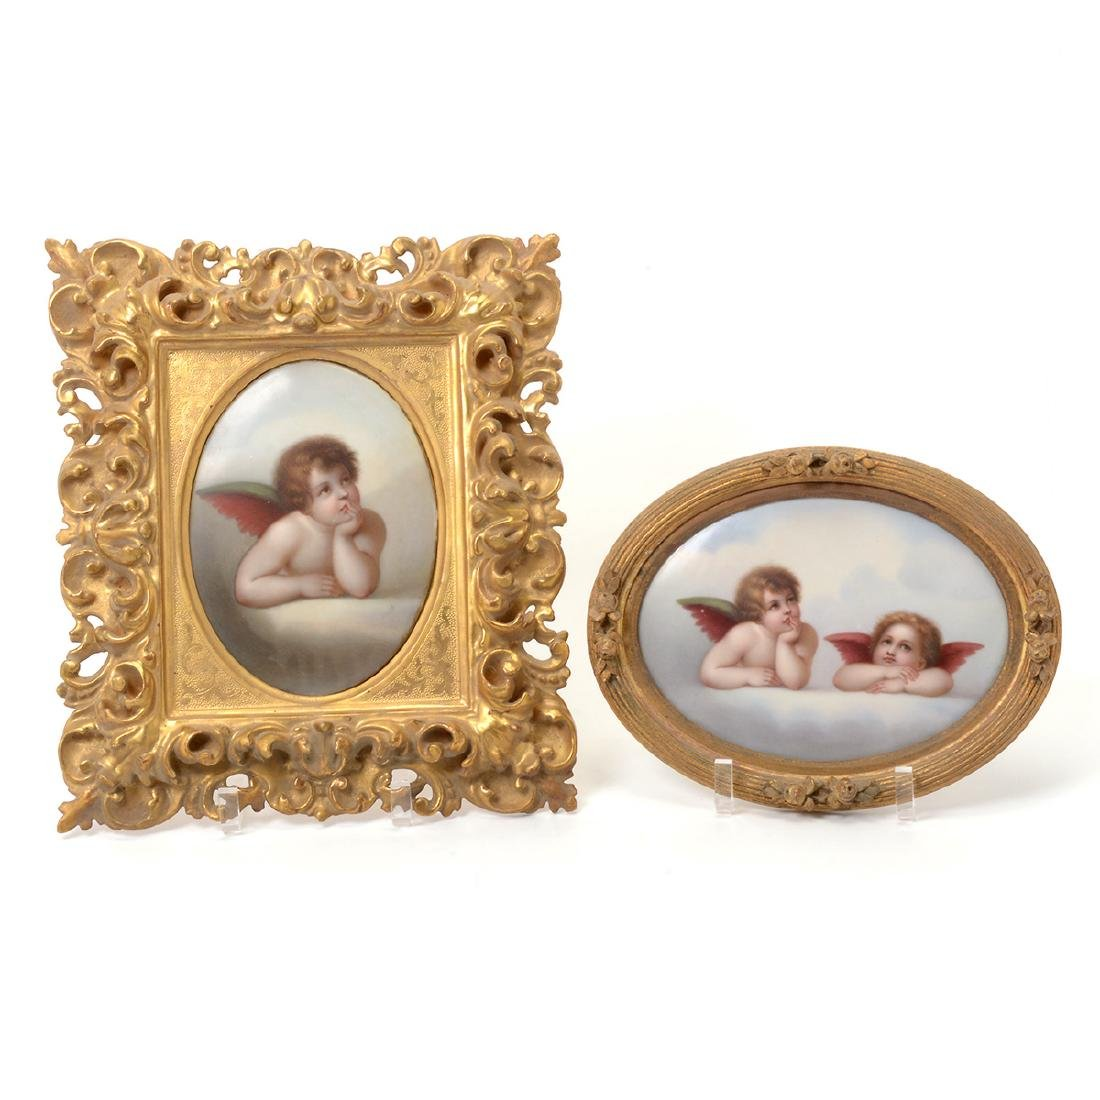 Two Italian Porcelain Plaques of Angels